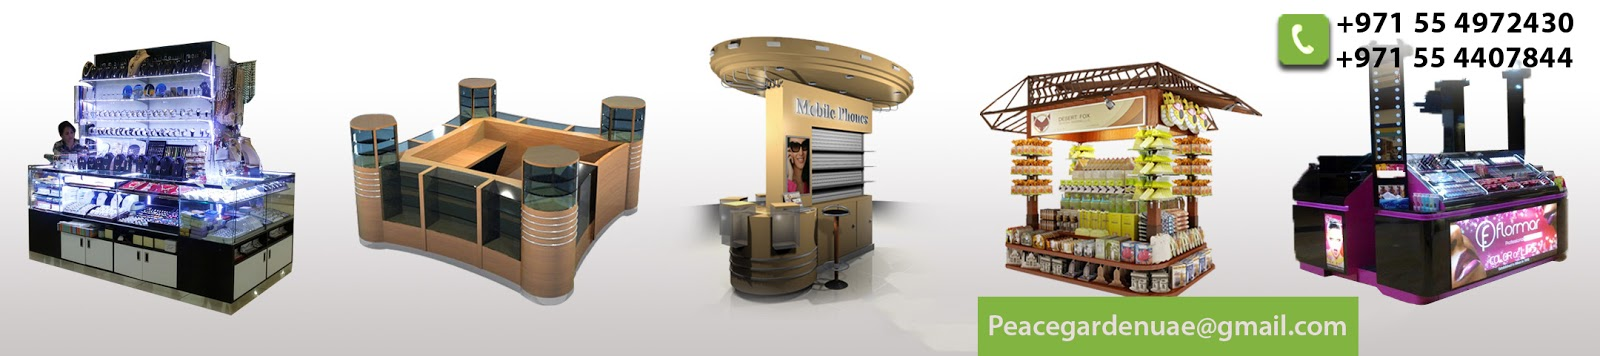 Kiosk Needs For Every Occasion Like Kiosk For Shopping Malls, Candy